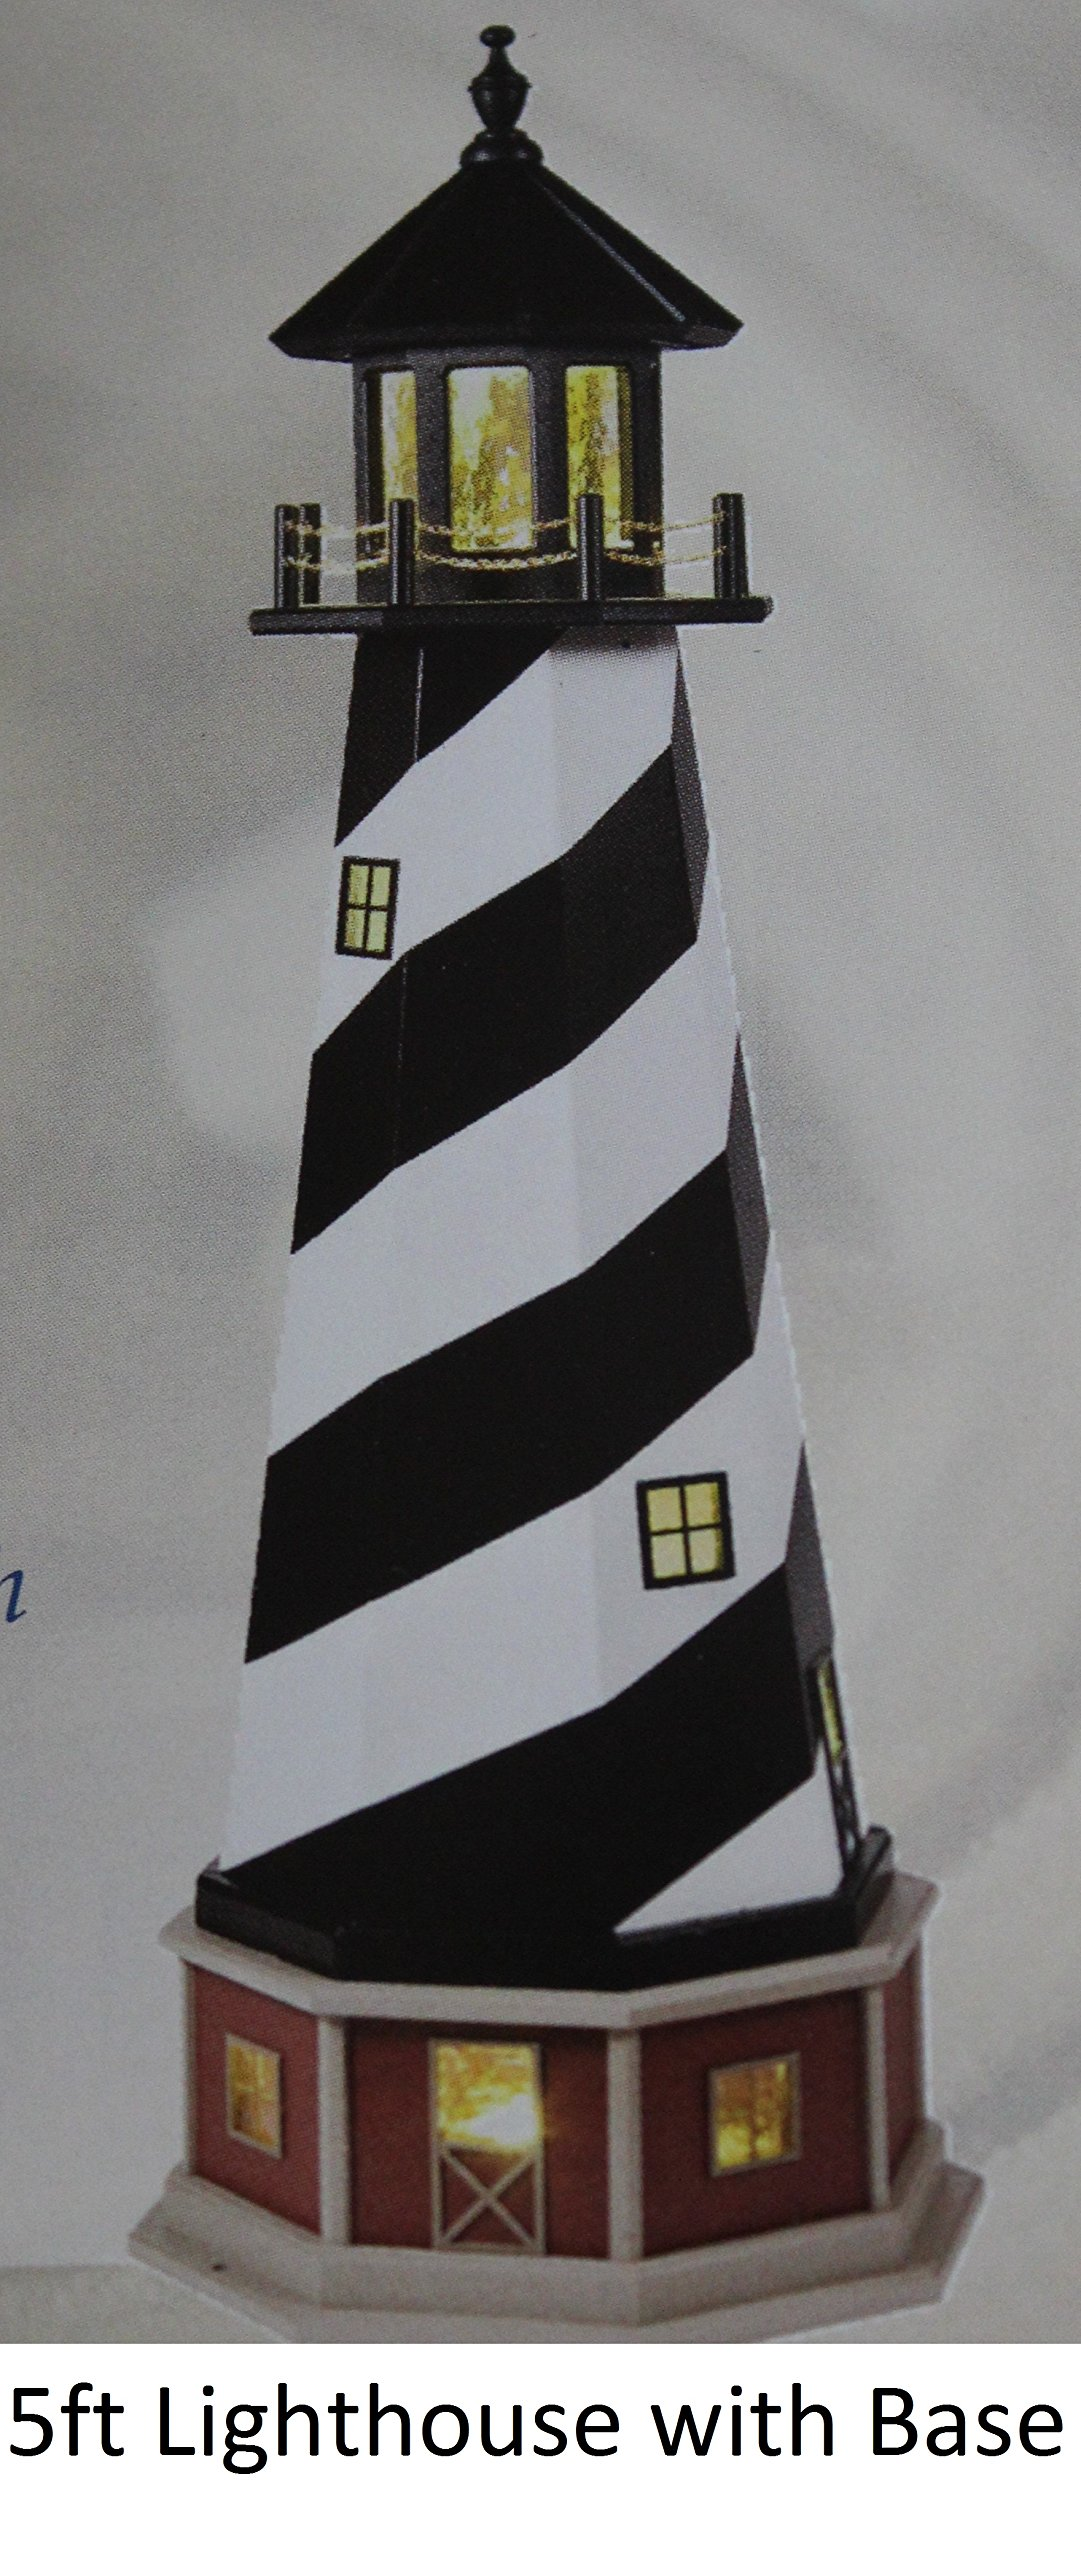 Amish-Made Hybrid (Wood and Poly) Lighthouse with Base - Cape Hatteras, NC Replica, 6' Tall